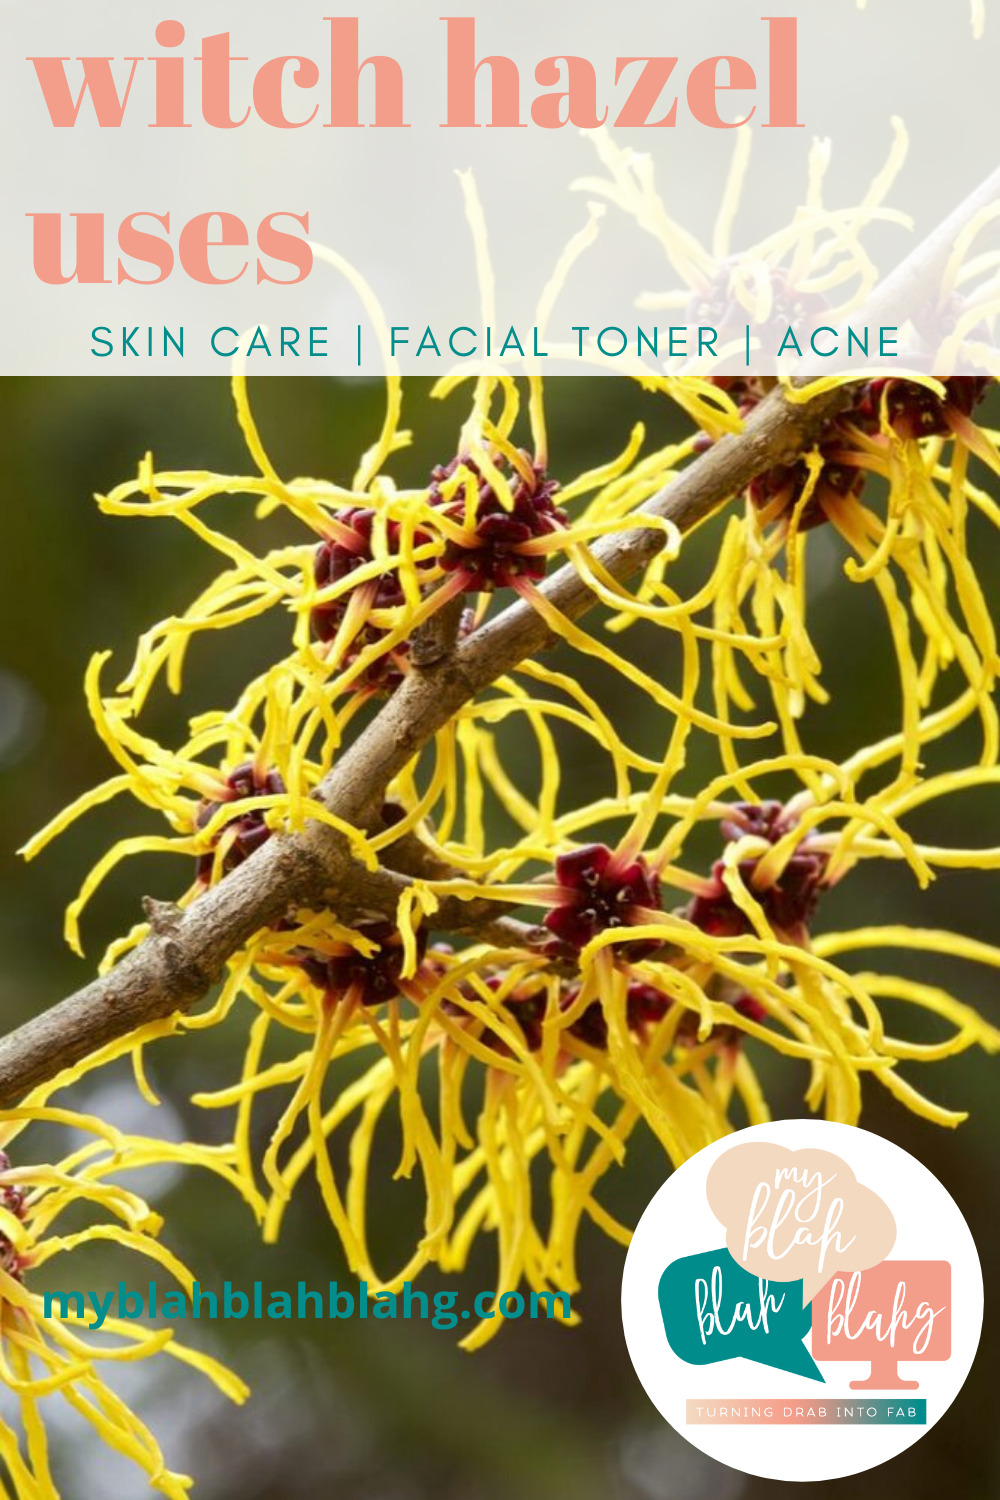 Witch hazel has some seriously amazing uses when it comes to skin care. Whether you have dry, oily, or a combination skin type, you have got to add this to your skin care routine. #witchhazeluses #skincare #myblahblahblahgblog